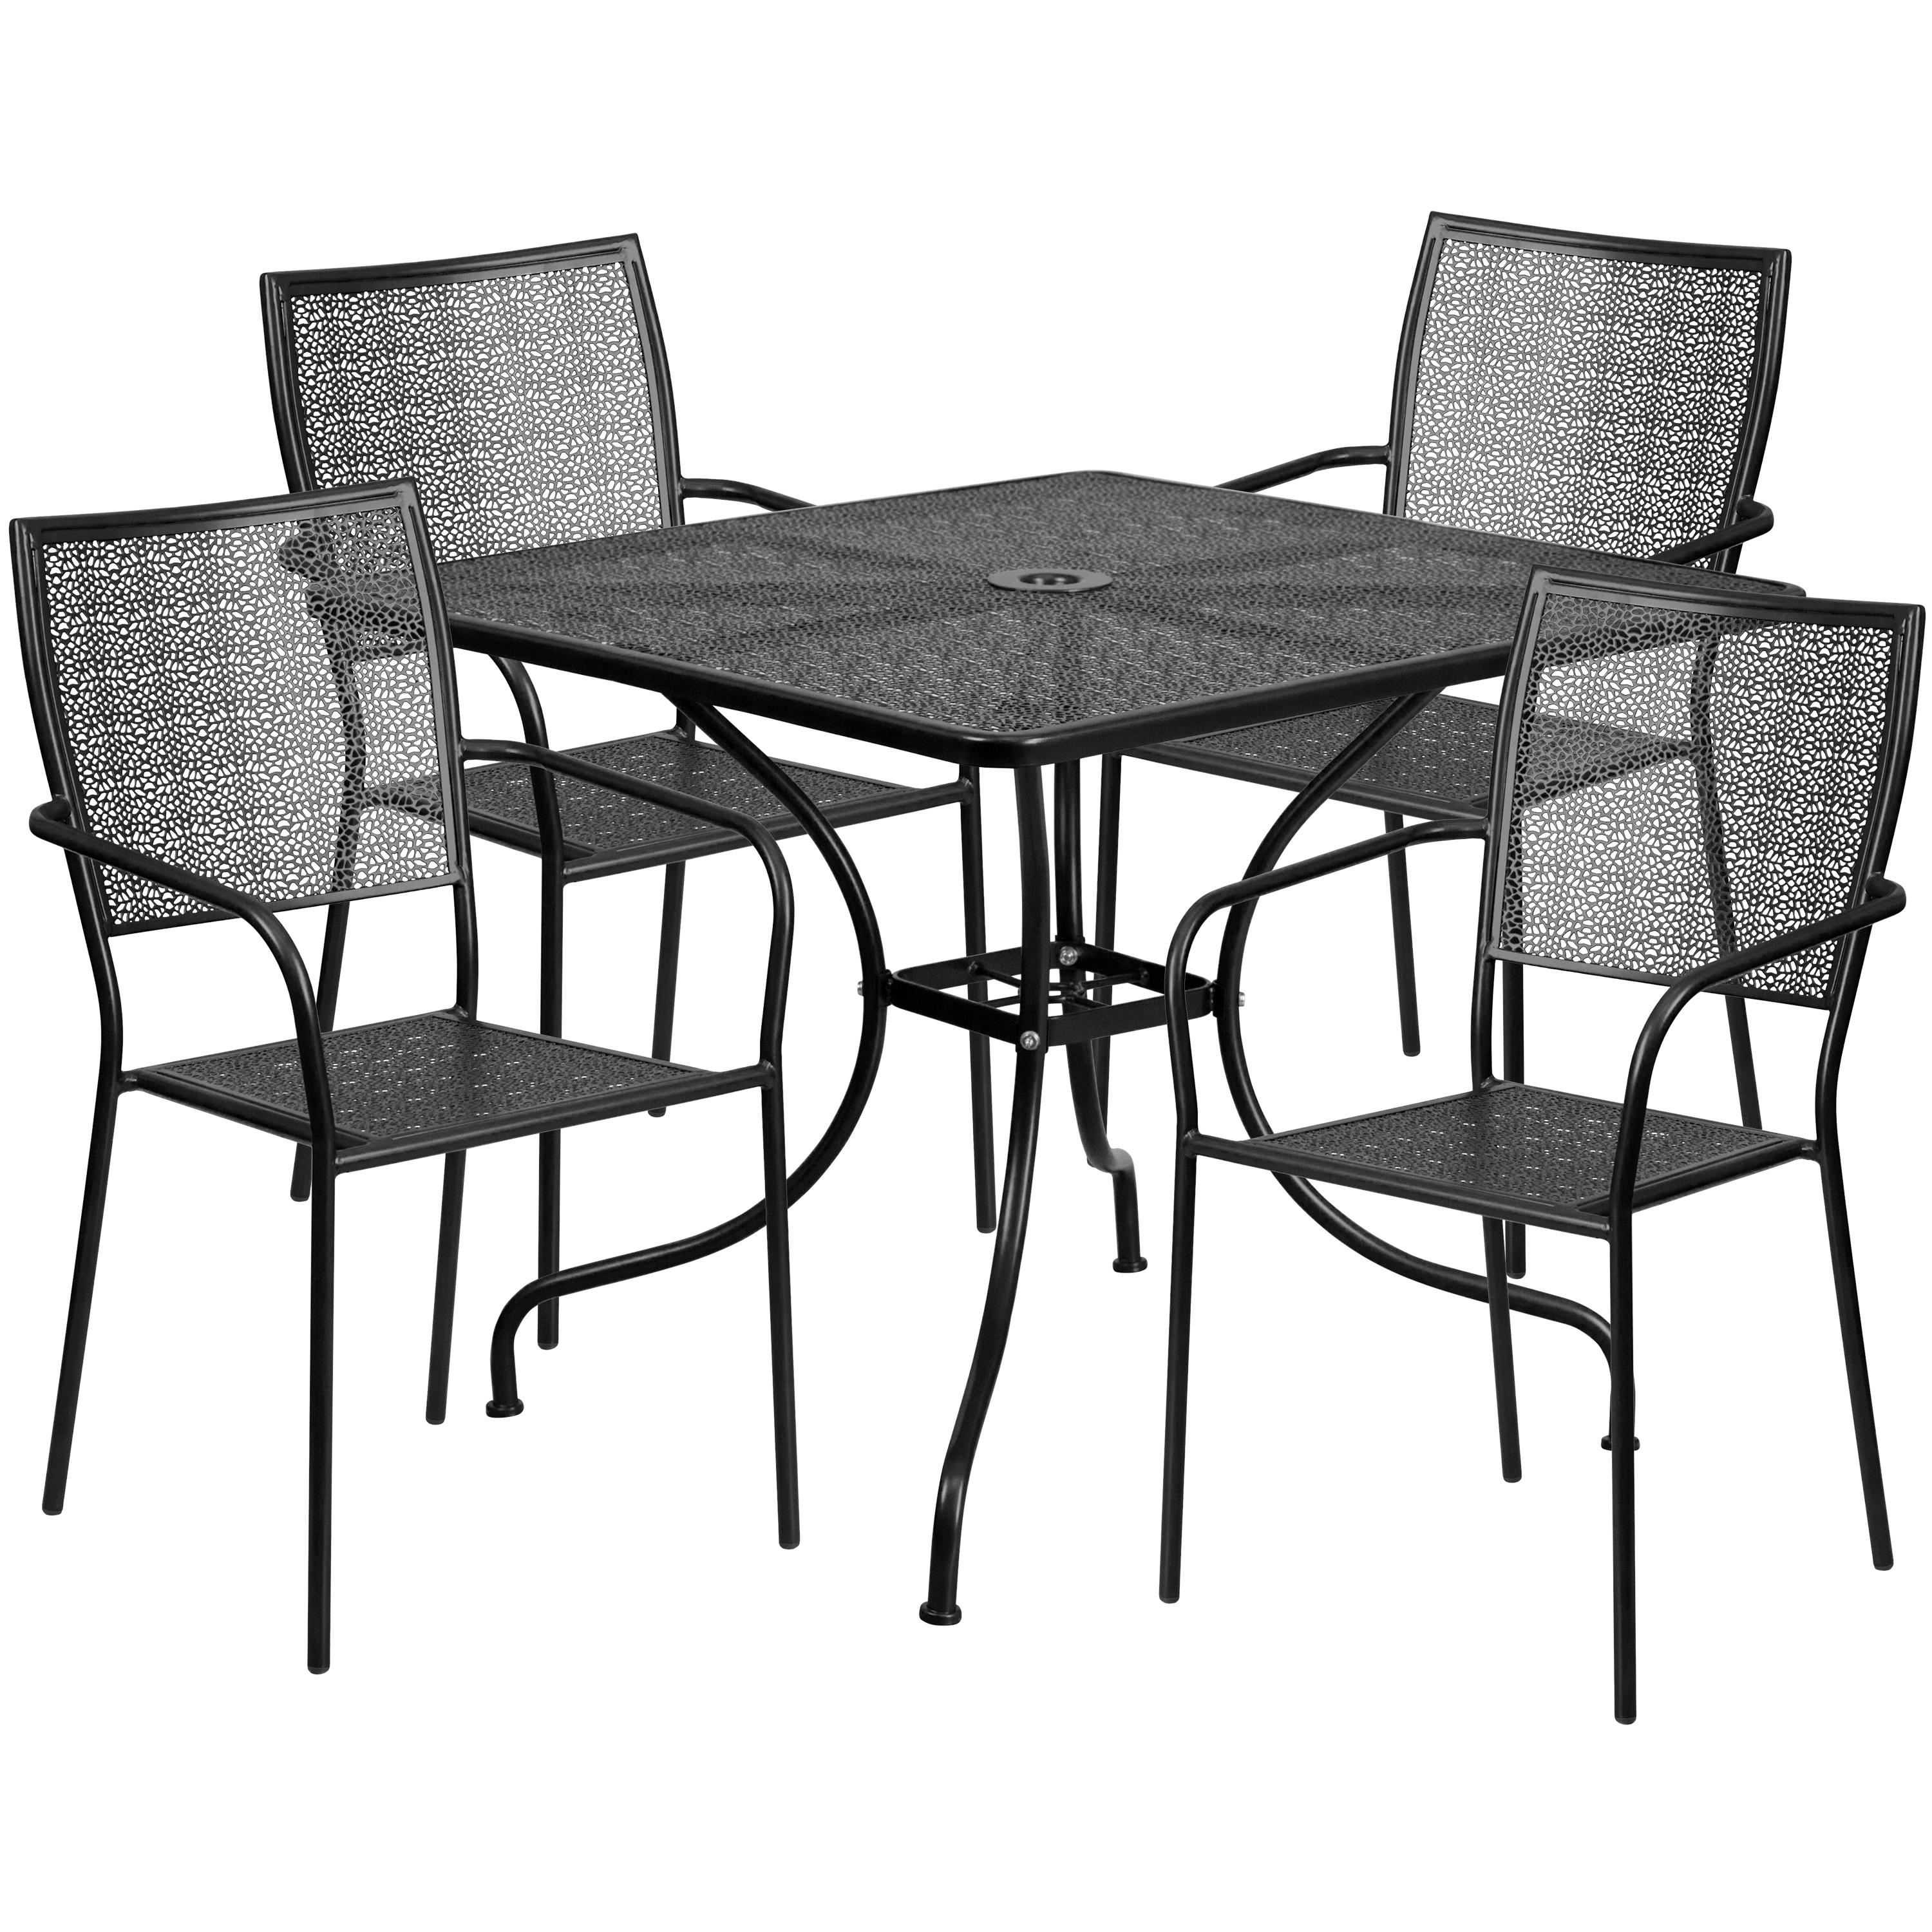 Indoor /& Outdoor Light Gray Restaurant Patio Stack Chair with Arm /& Round Back